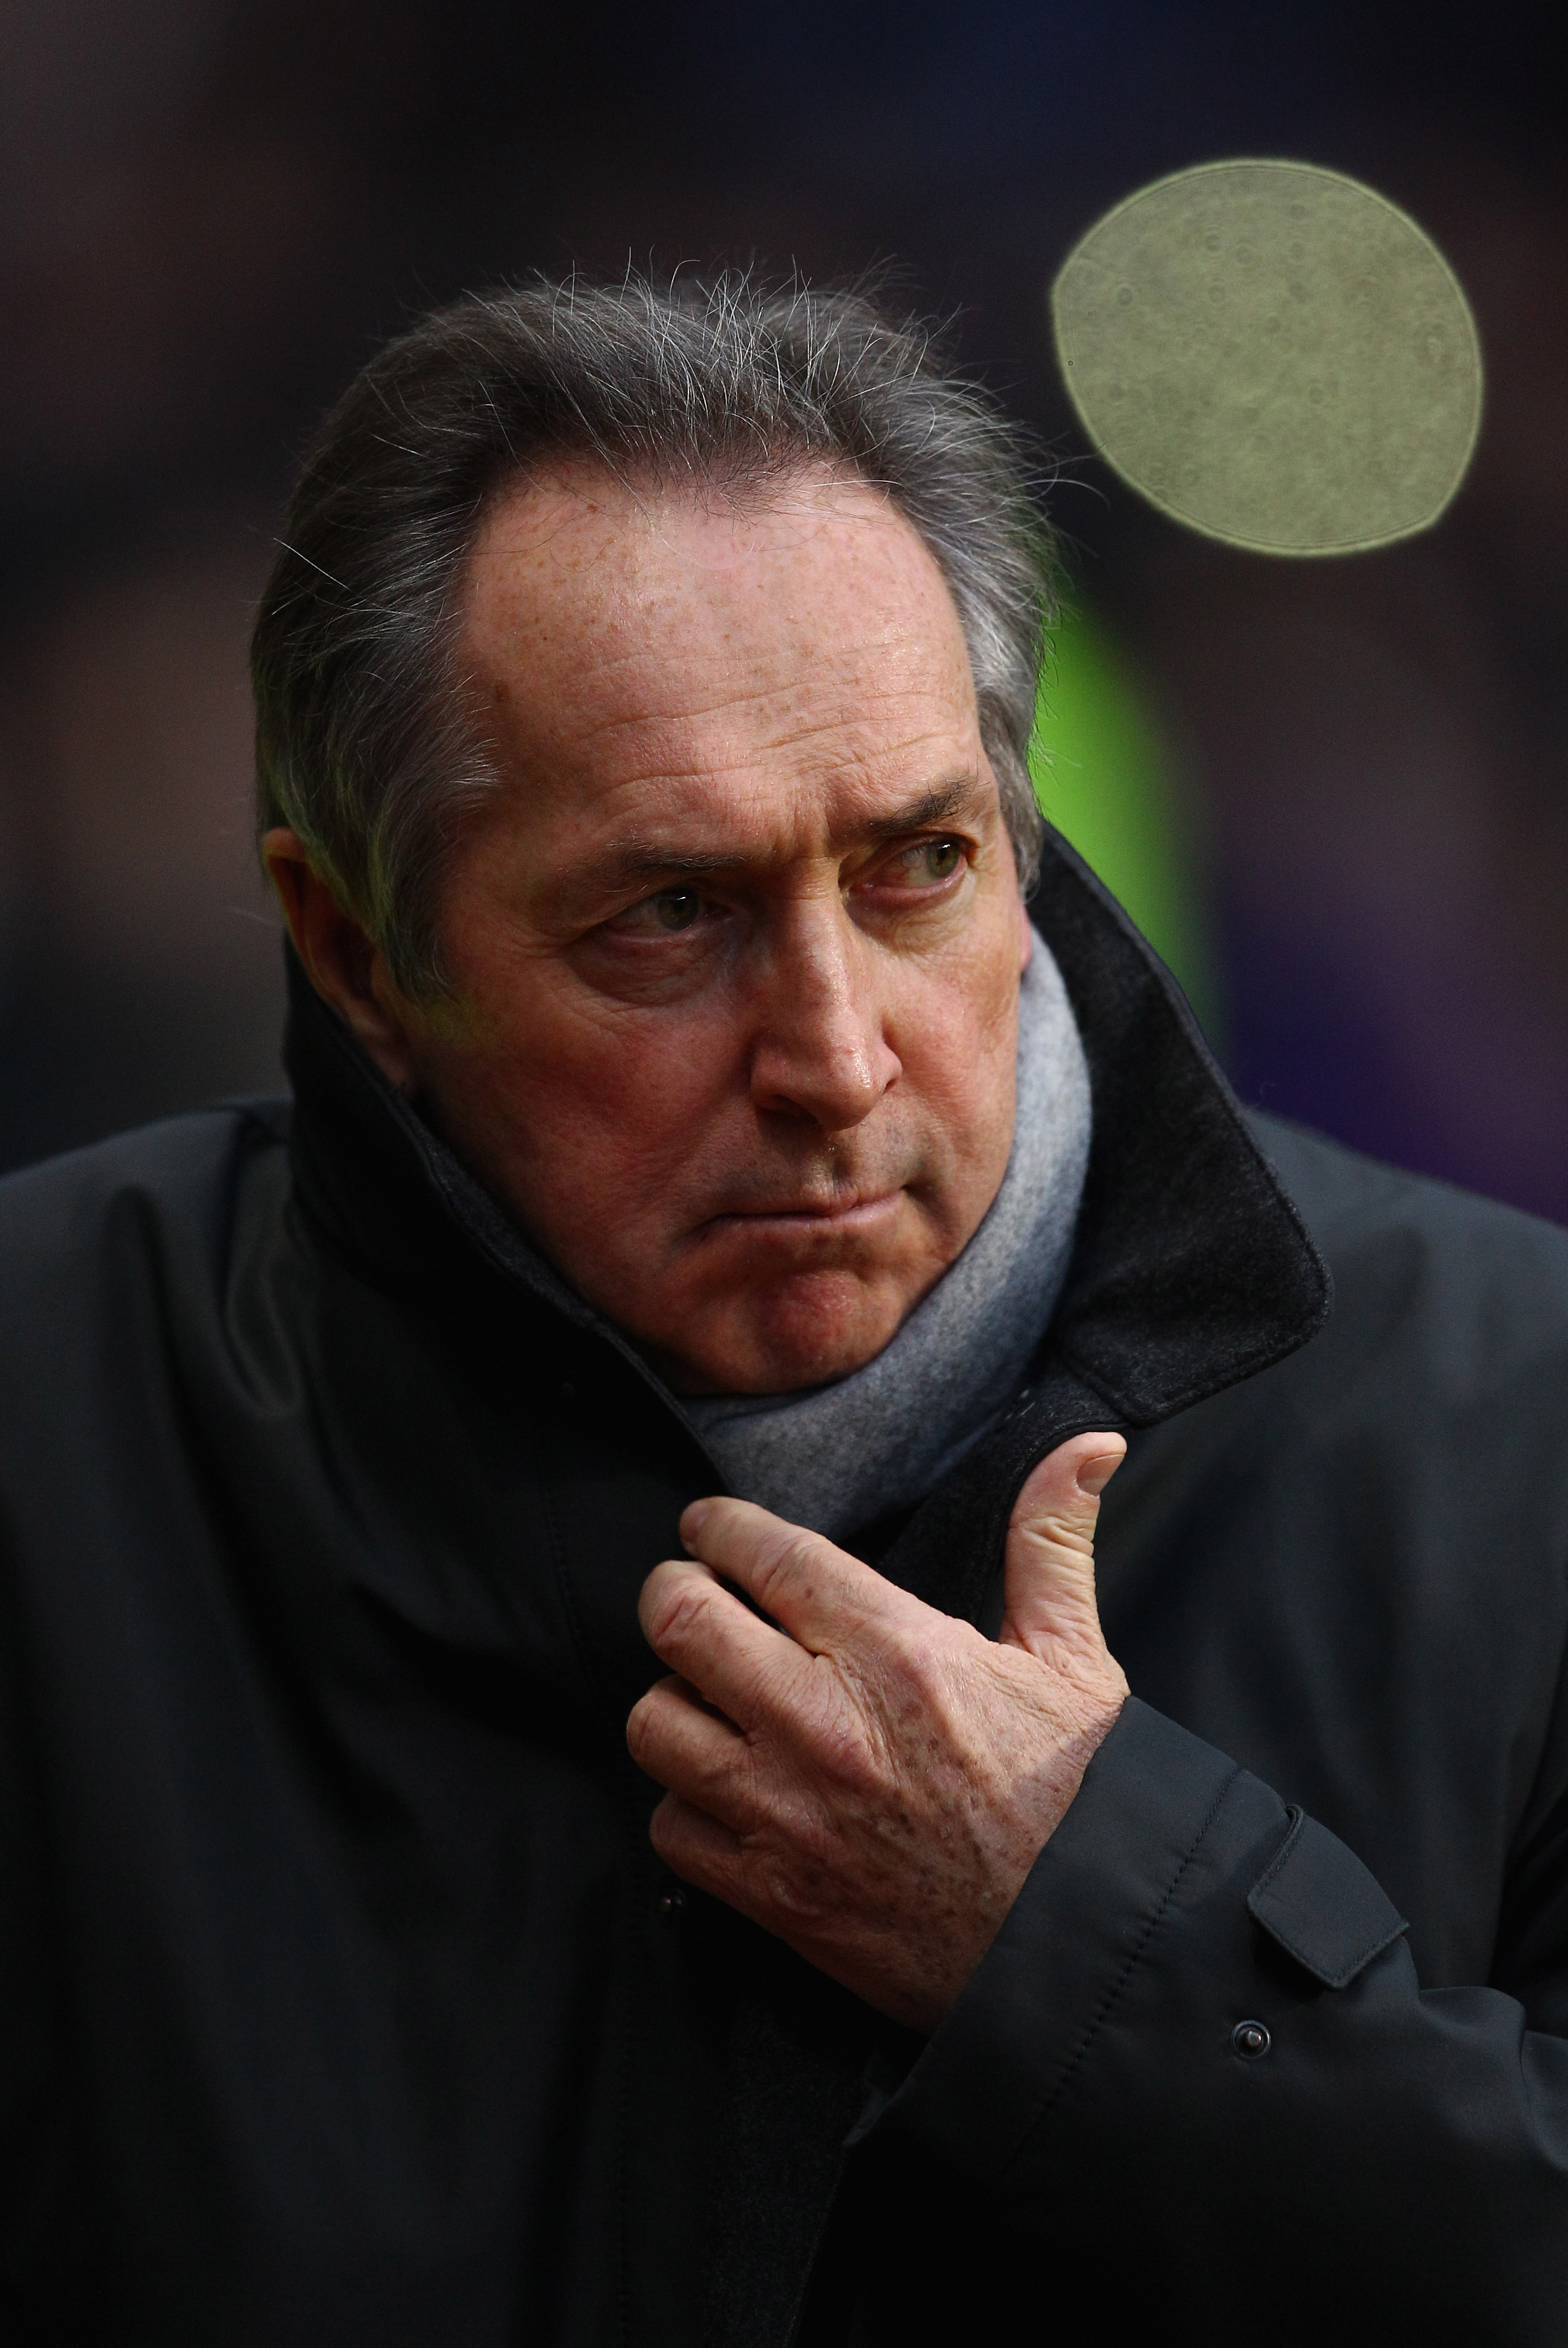 BIRMINGHAM, ENGLAND - DECEMBER 11:  Villa manager Gerard Houllier looks on during the Barclays Premier League match between Aston Villa and West Bromwich Albion at Villa Park on December 11, 2010 in Birmingham, England.  (Photo by Richard Heathcote/Getty